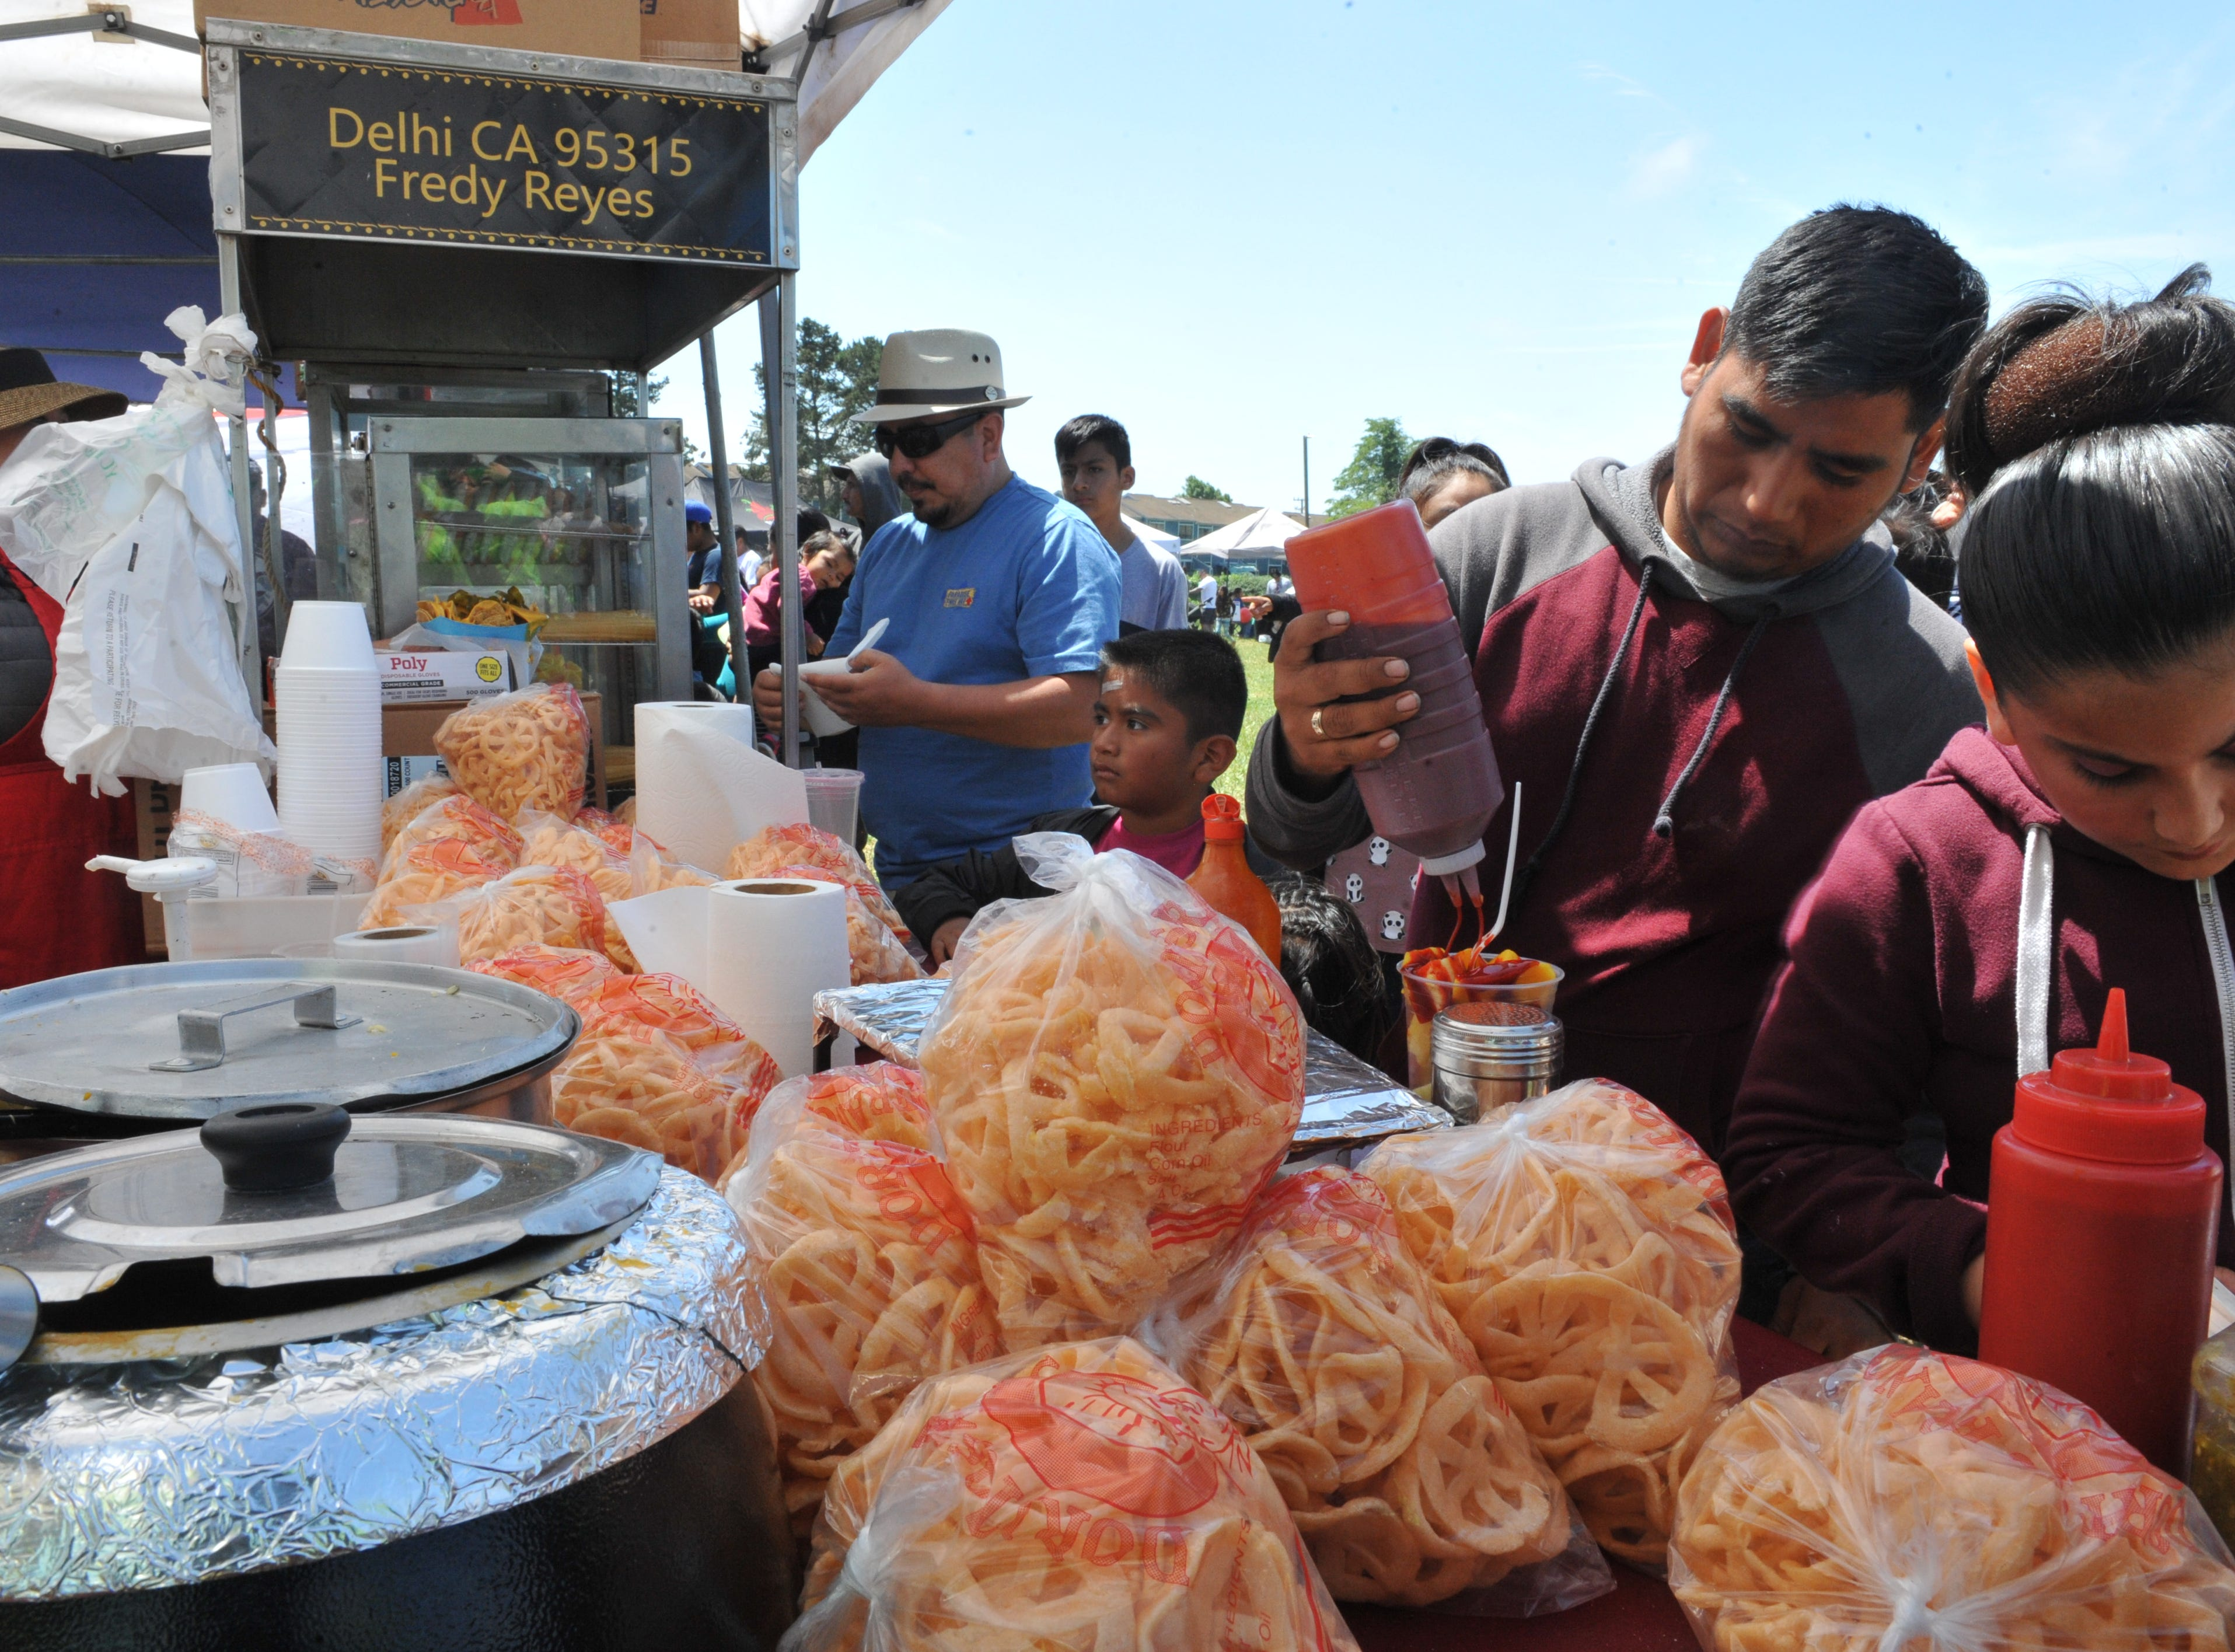 Kings + Queen Beverages from Delhi, Calif. served various snacks and drinks at Salinas' Día Del Niño on April 28, 2019.